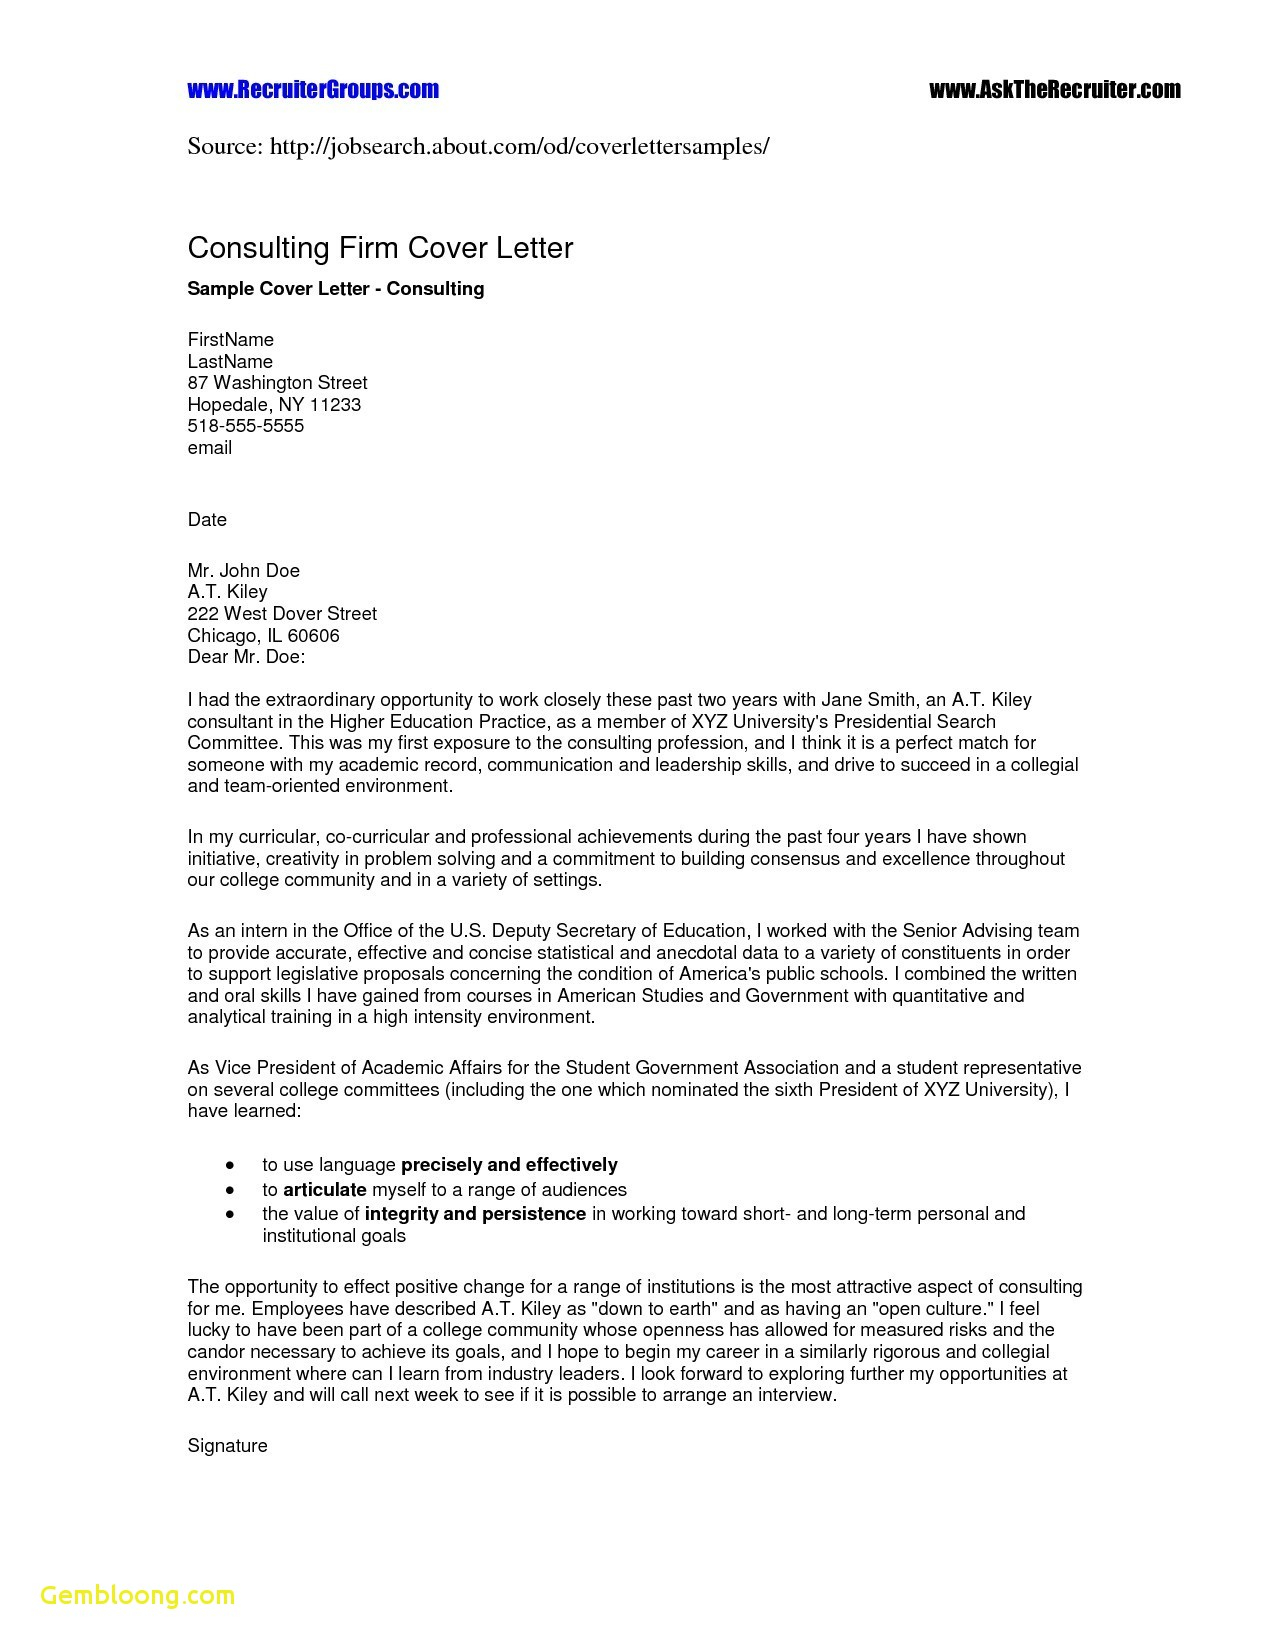 casual cover letter template example-musicgoal 30 fresh casual job cover letter of musicgoal 1-r